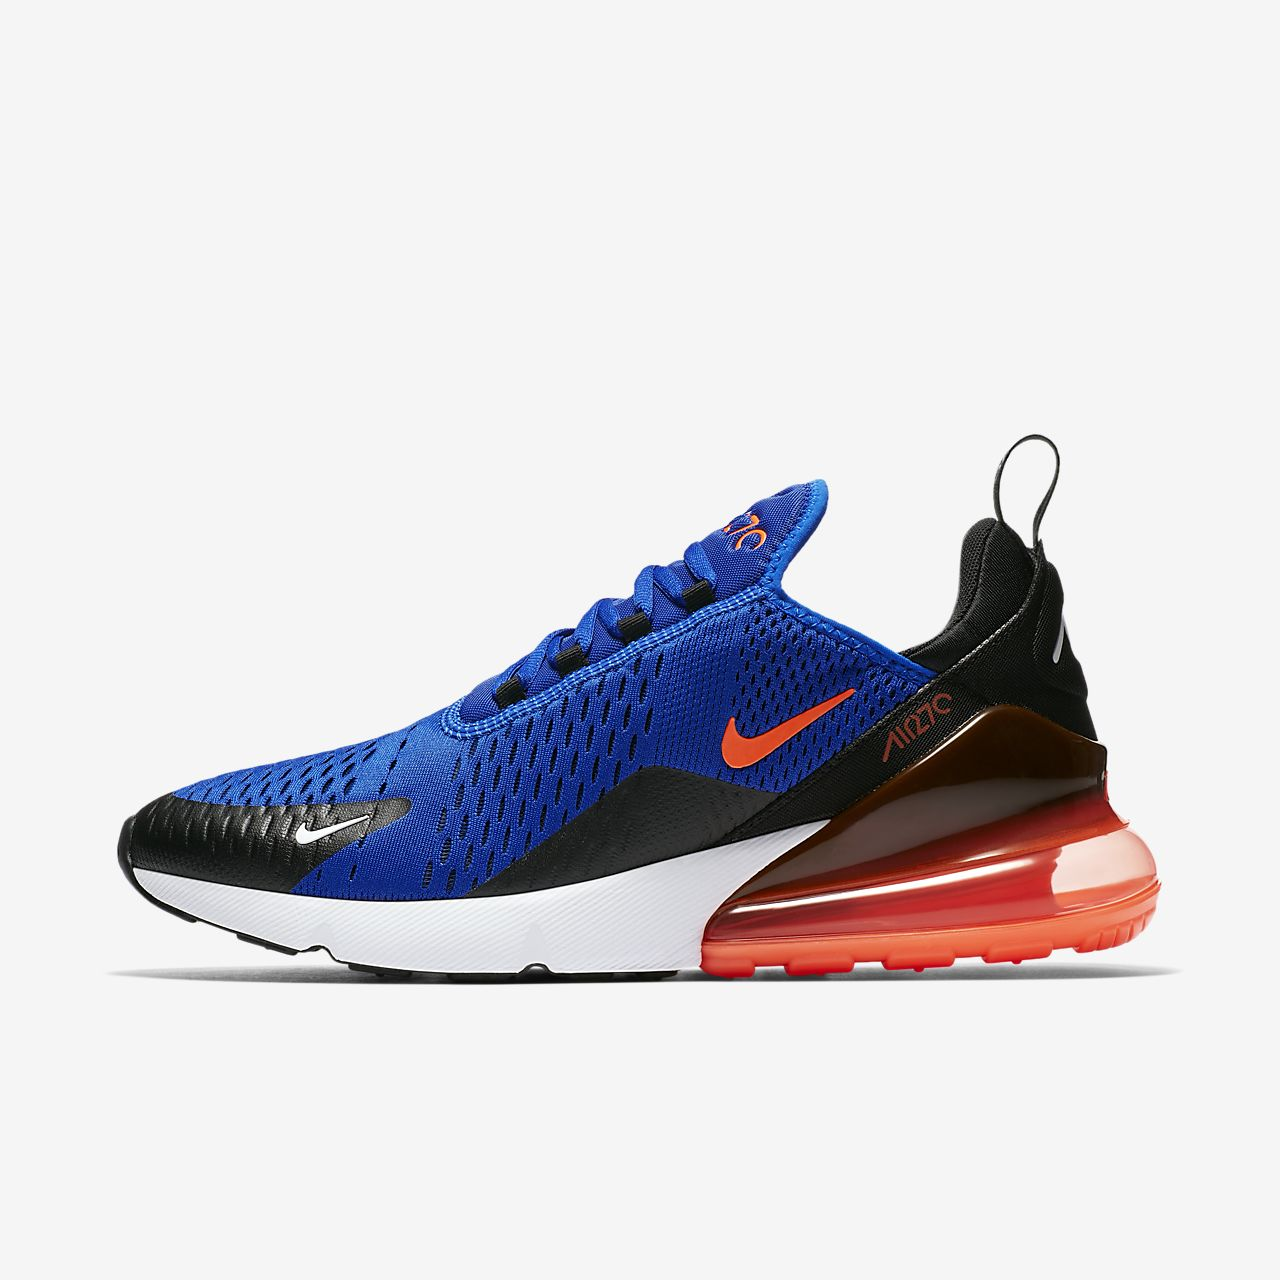 Nike Air Max 270 Blue Hyper Crimson Mens Running Shoes Sneakers AH8050-401